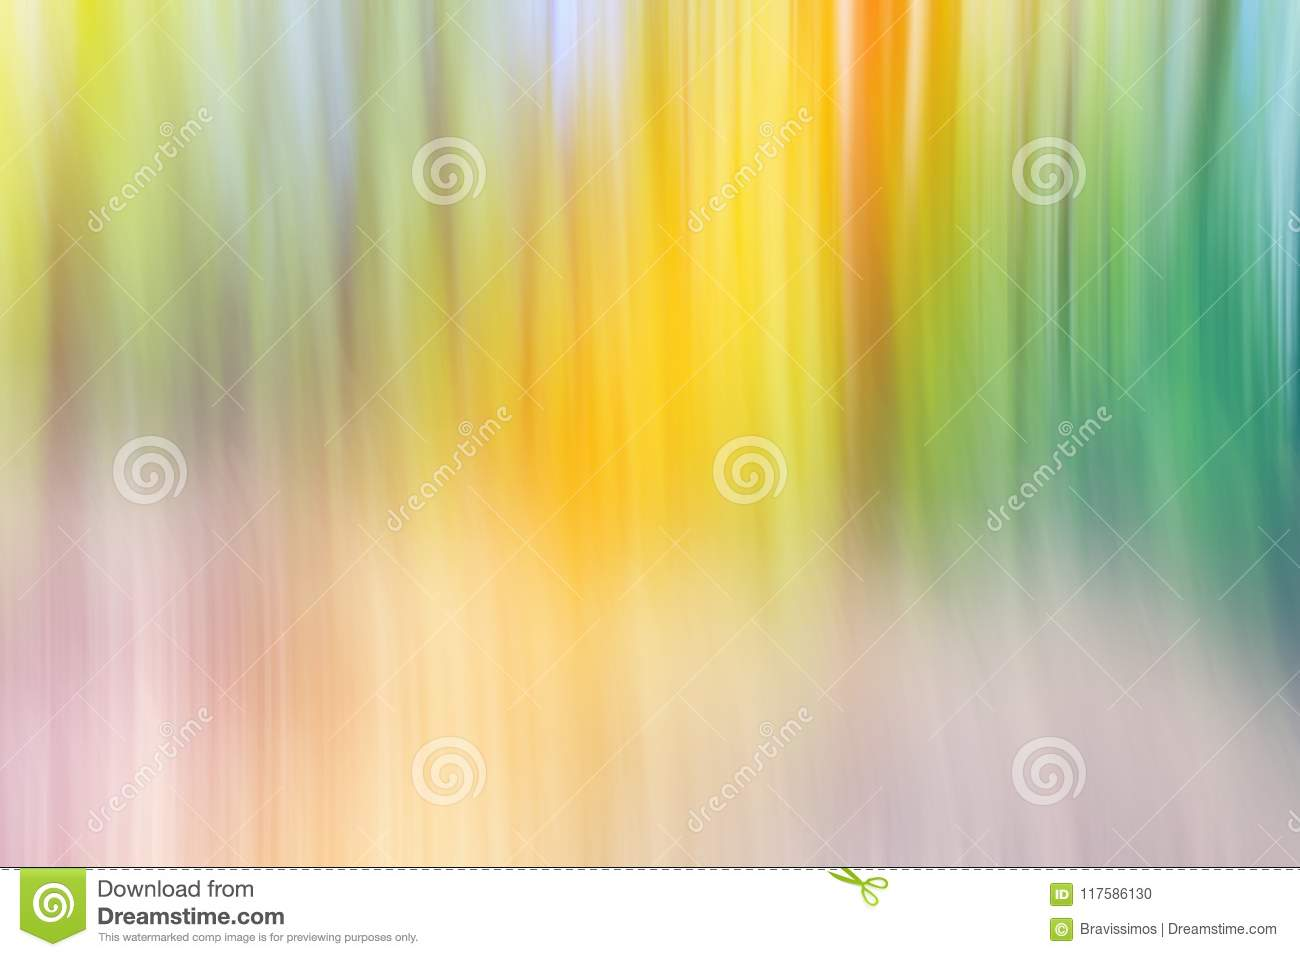 World environment green tree day concept. Abstract blurred trees texture sunset background